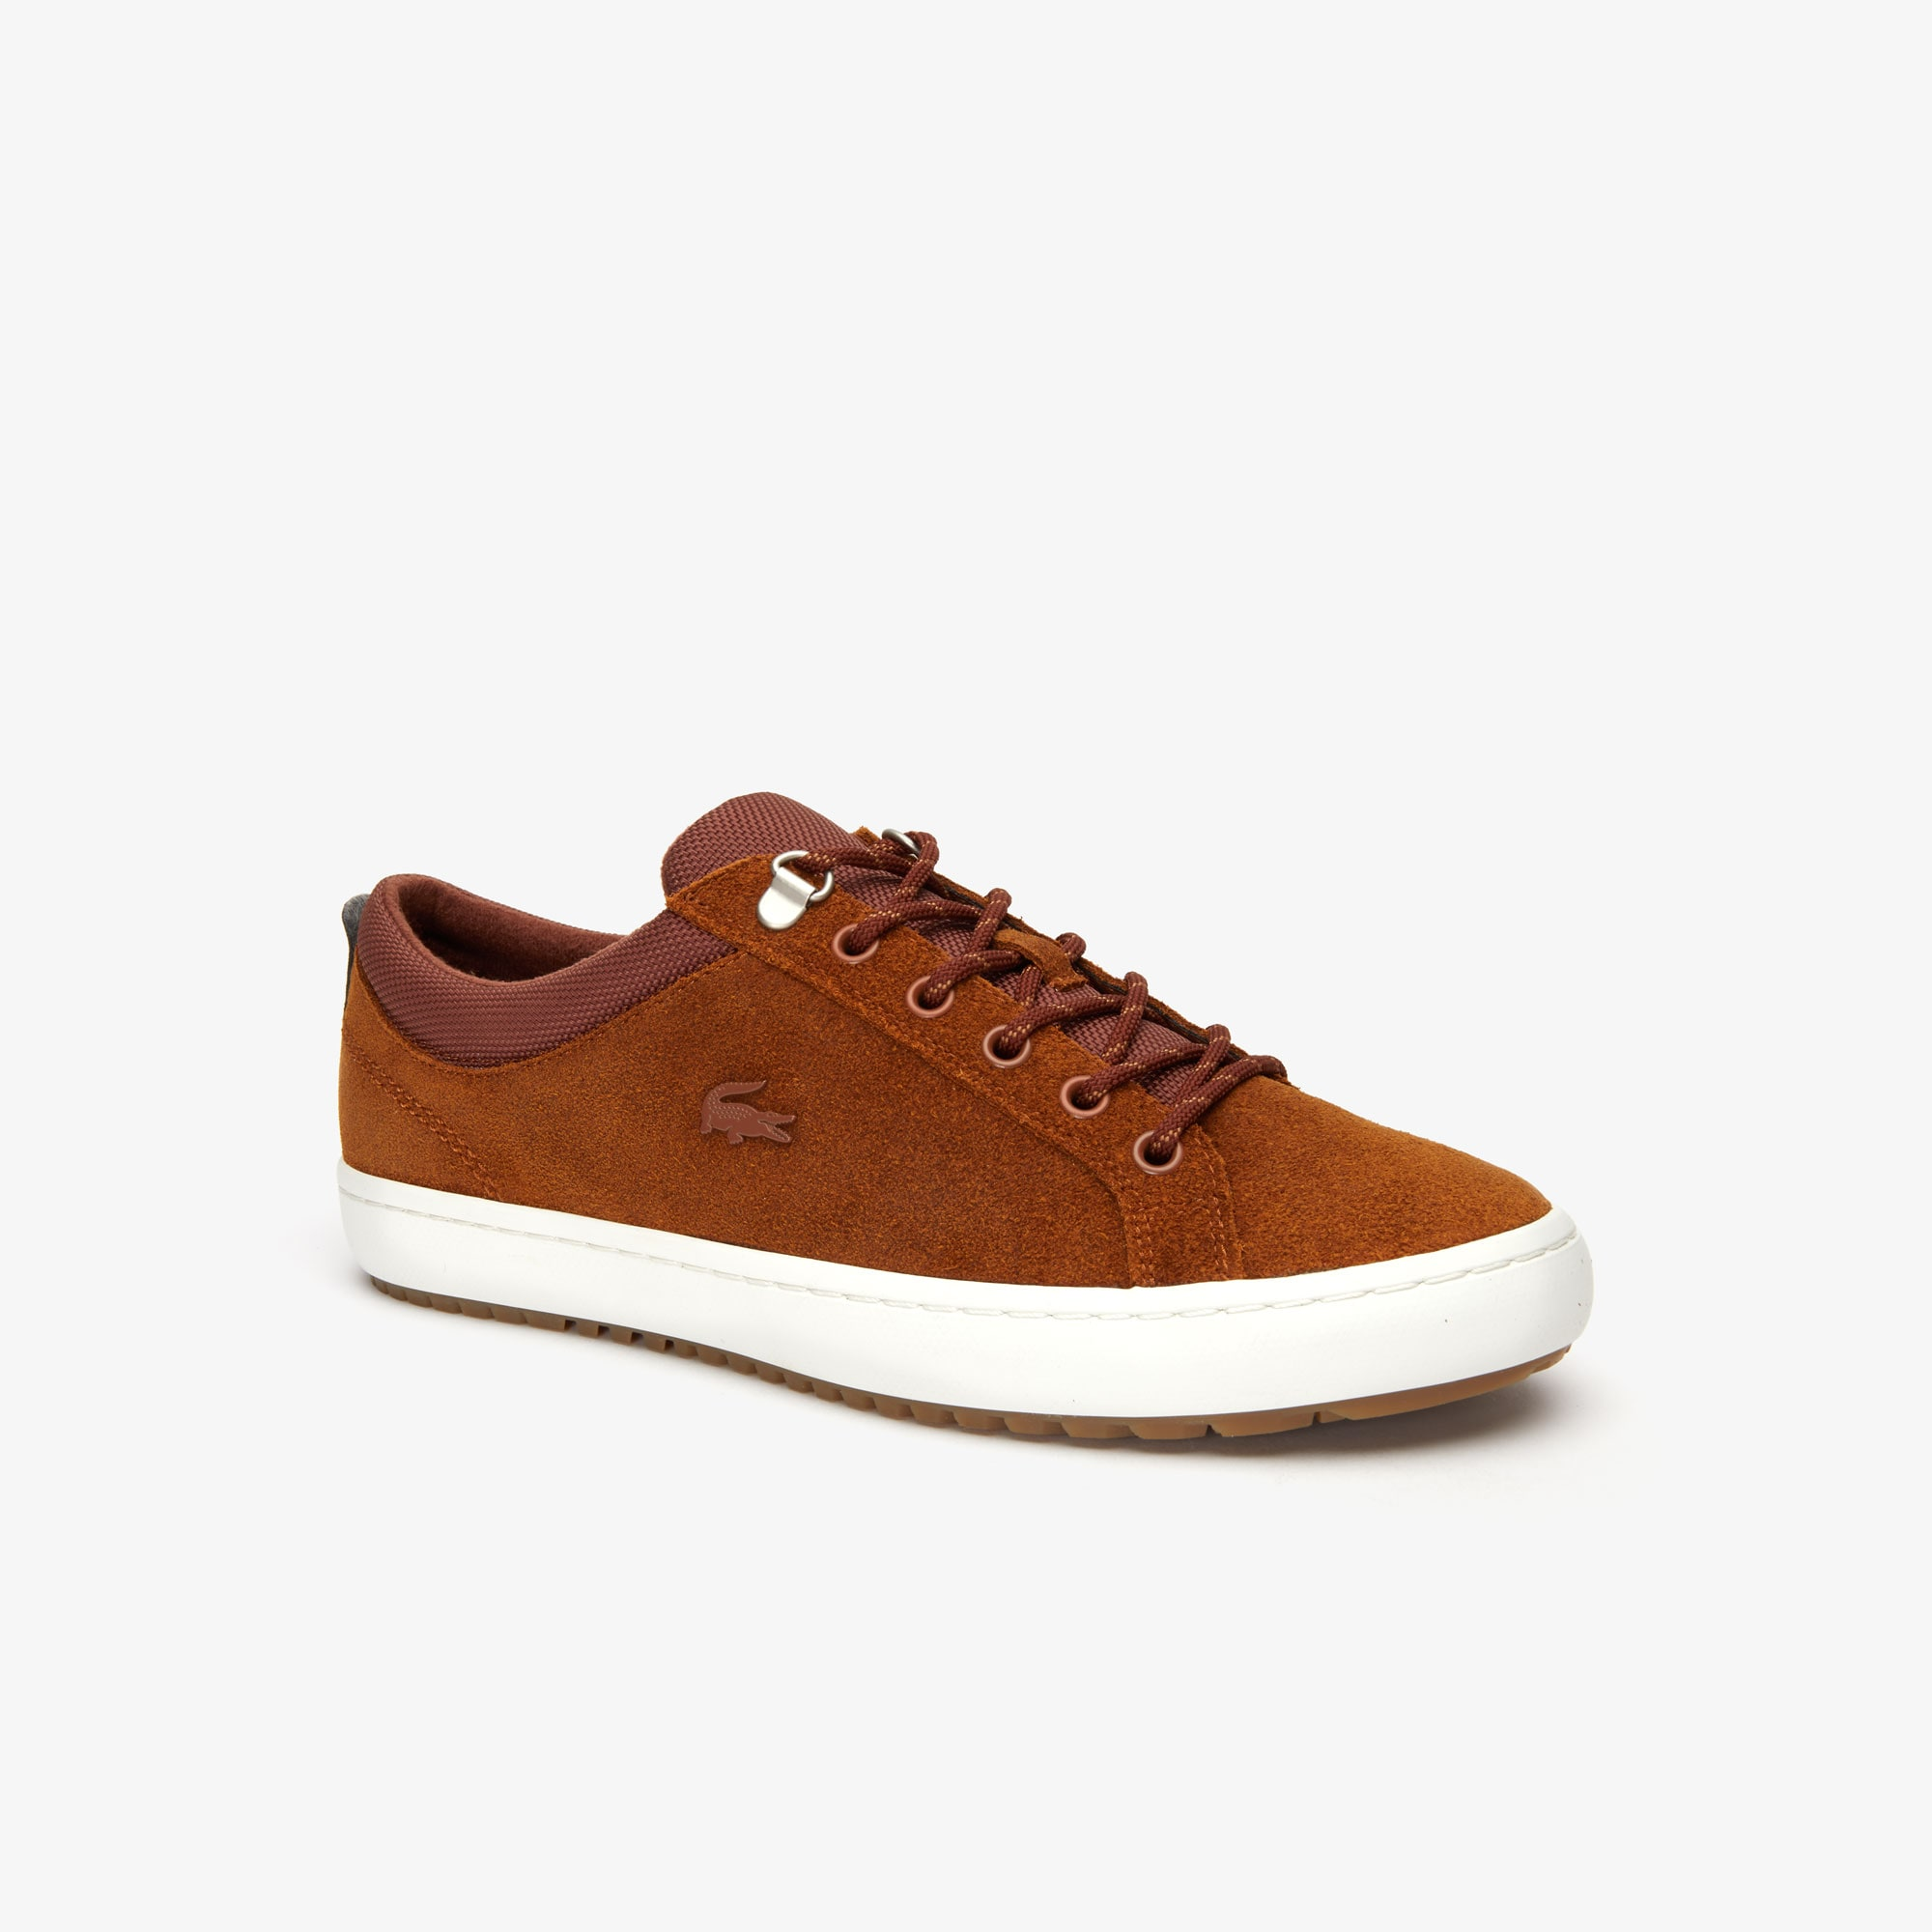 Sneakers Straightset Insulate homme en cuir ton sur ton